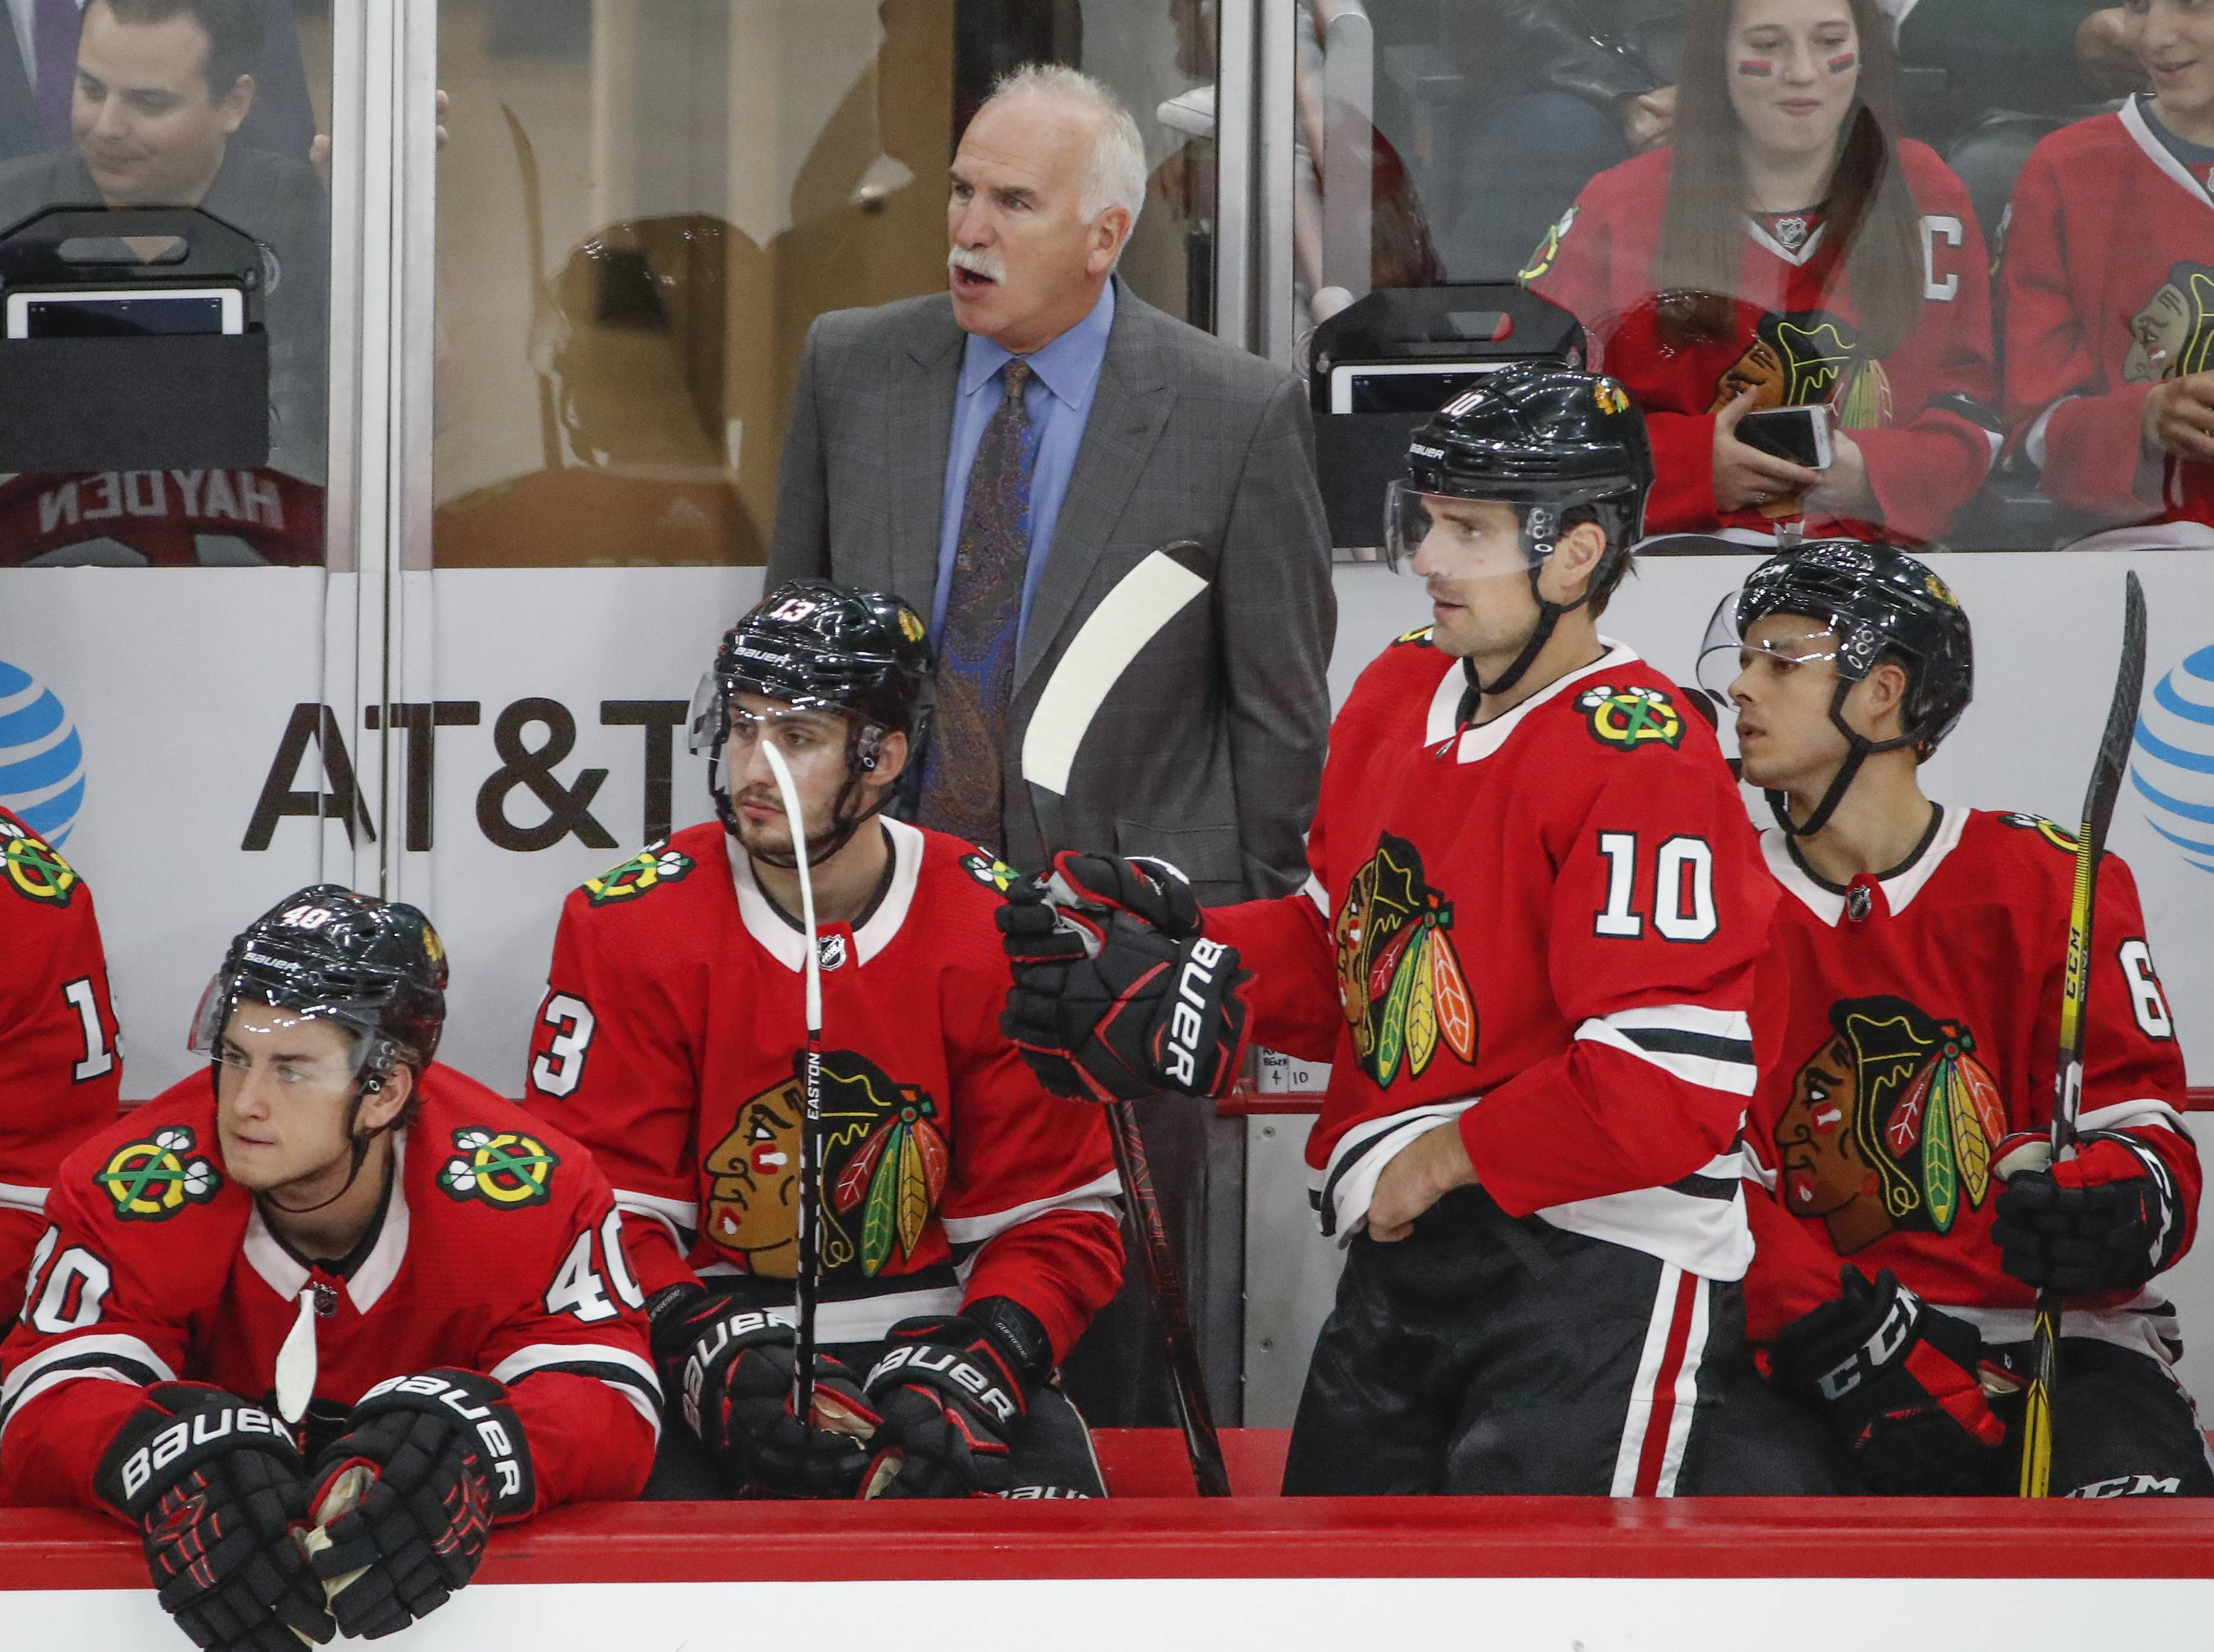 Chicago Blackhawks head coach Joel Quenneville, top center, yells to his team during the third period of a preseason NHL hockey game against the Columbus Blue Jackets Saturday, Sept. 23, 2017, in Chicago. (AP Photo/Kamil Krzaczynski)